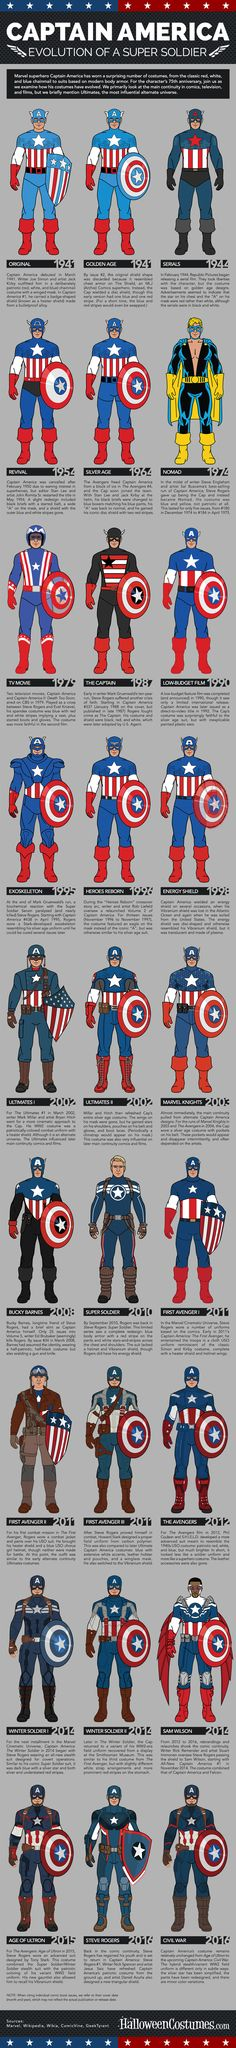 the-evolution-of-captain-americas-costume-in-comics-and-film-infographic